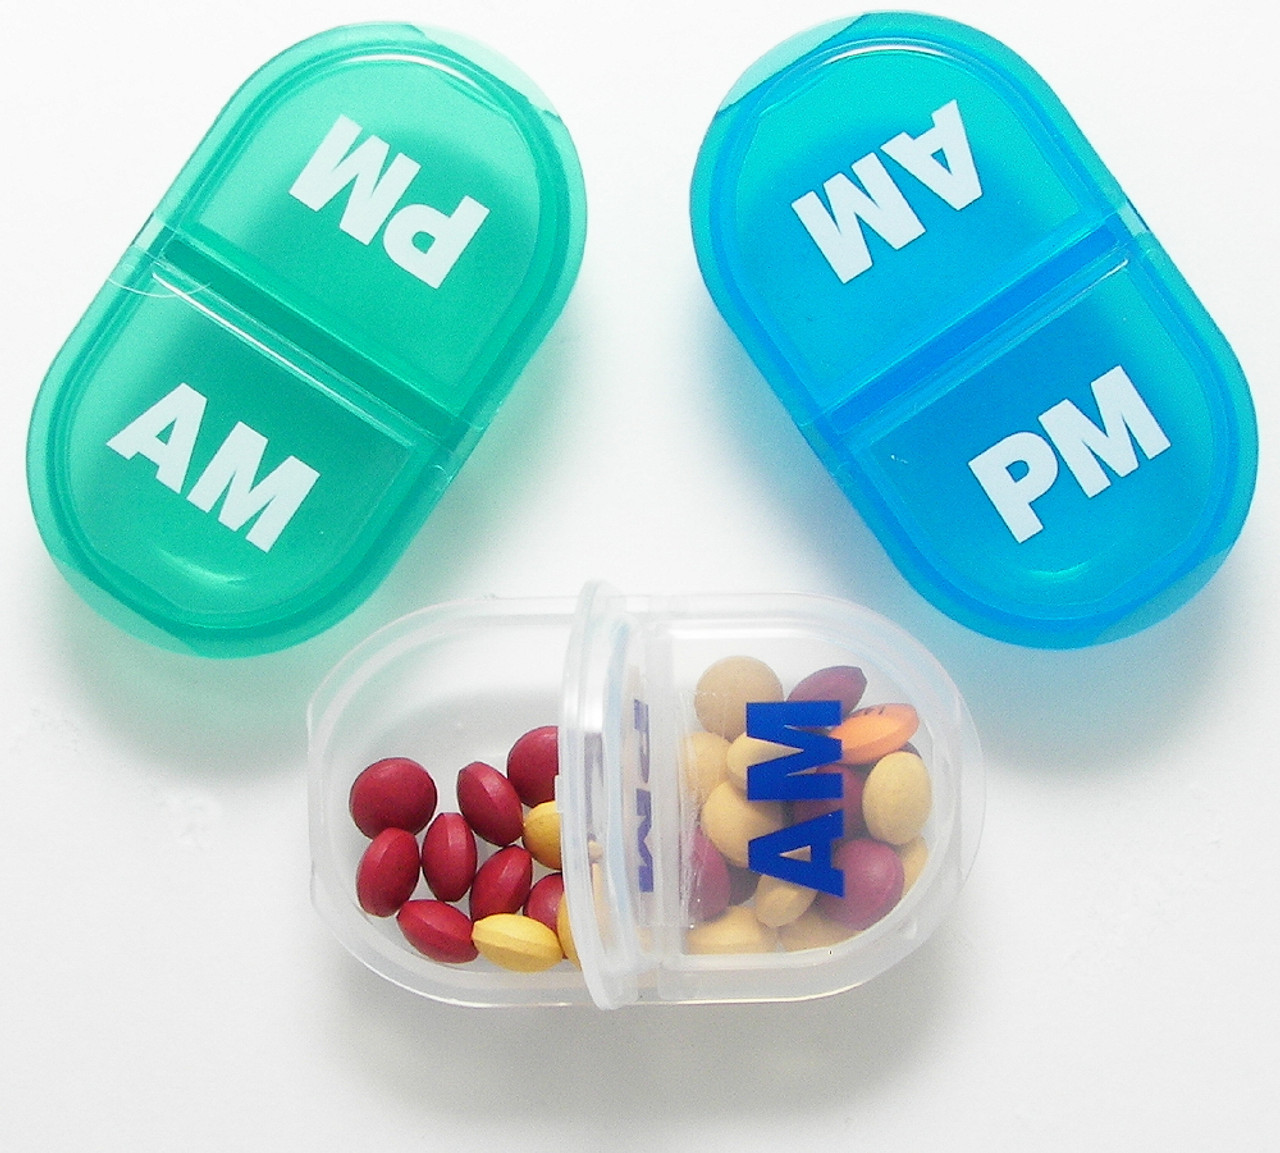 Handy daily am/pm pill organizer, grab one and go!